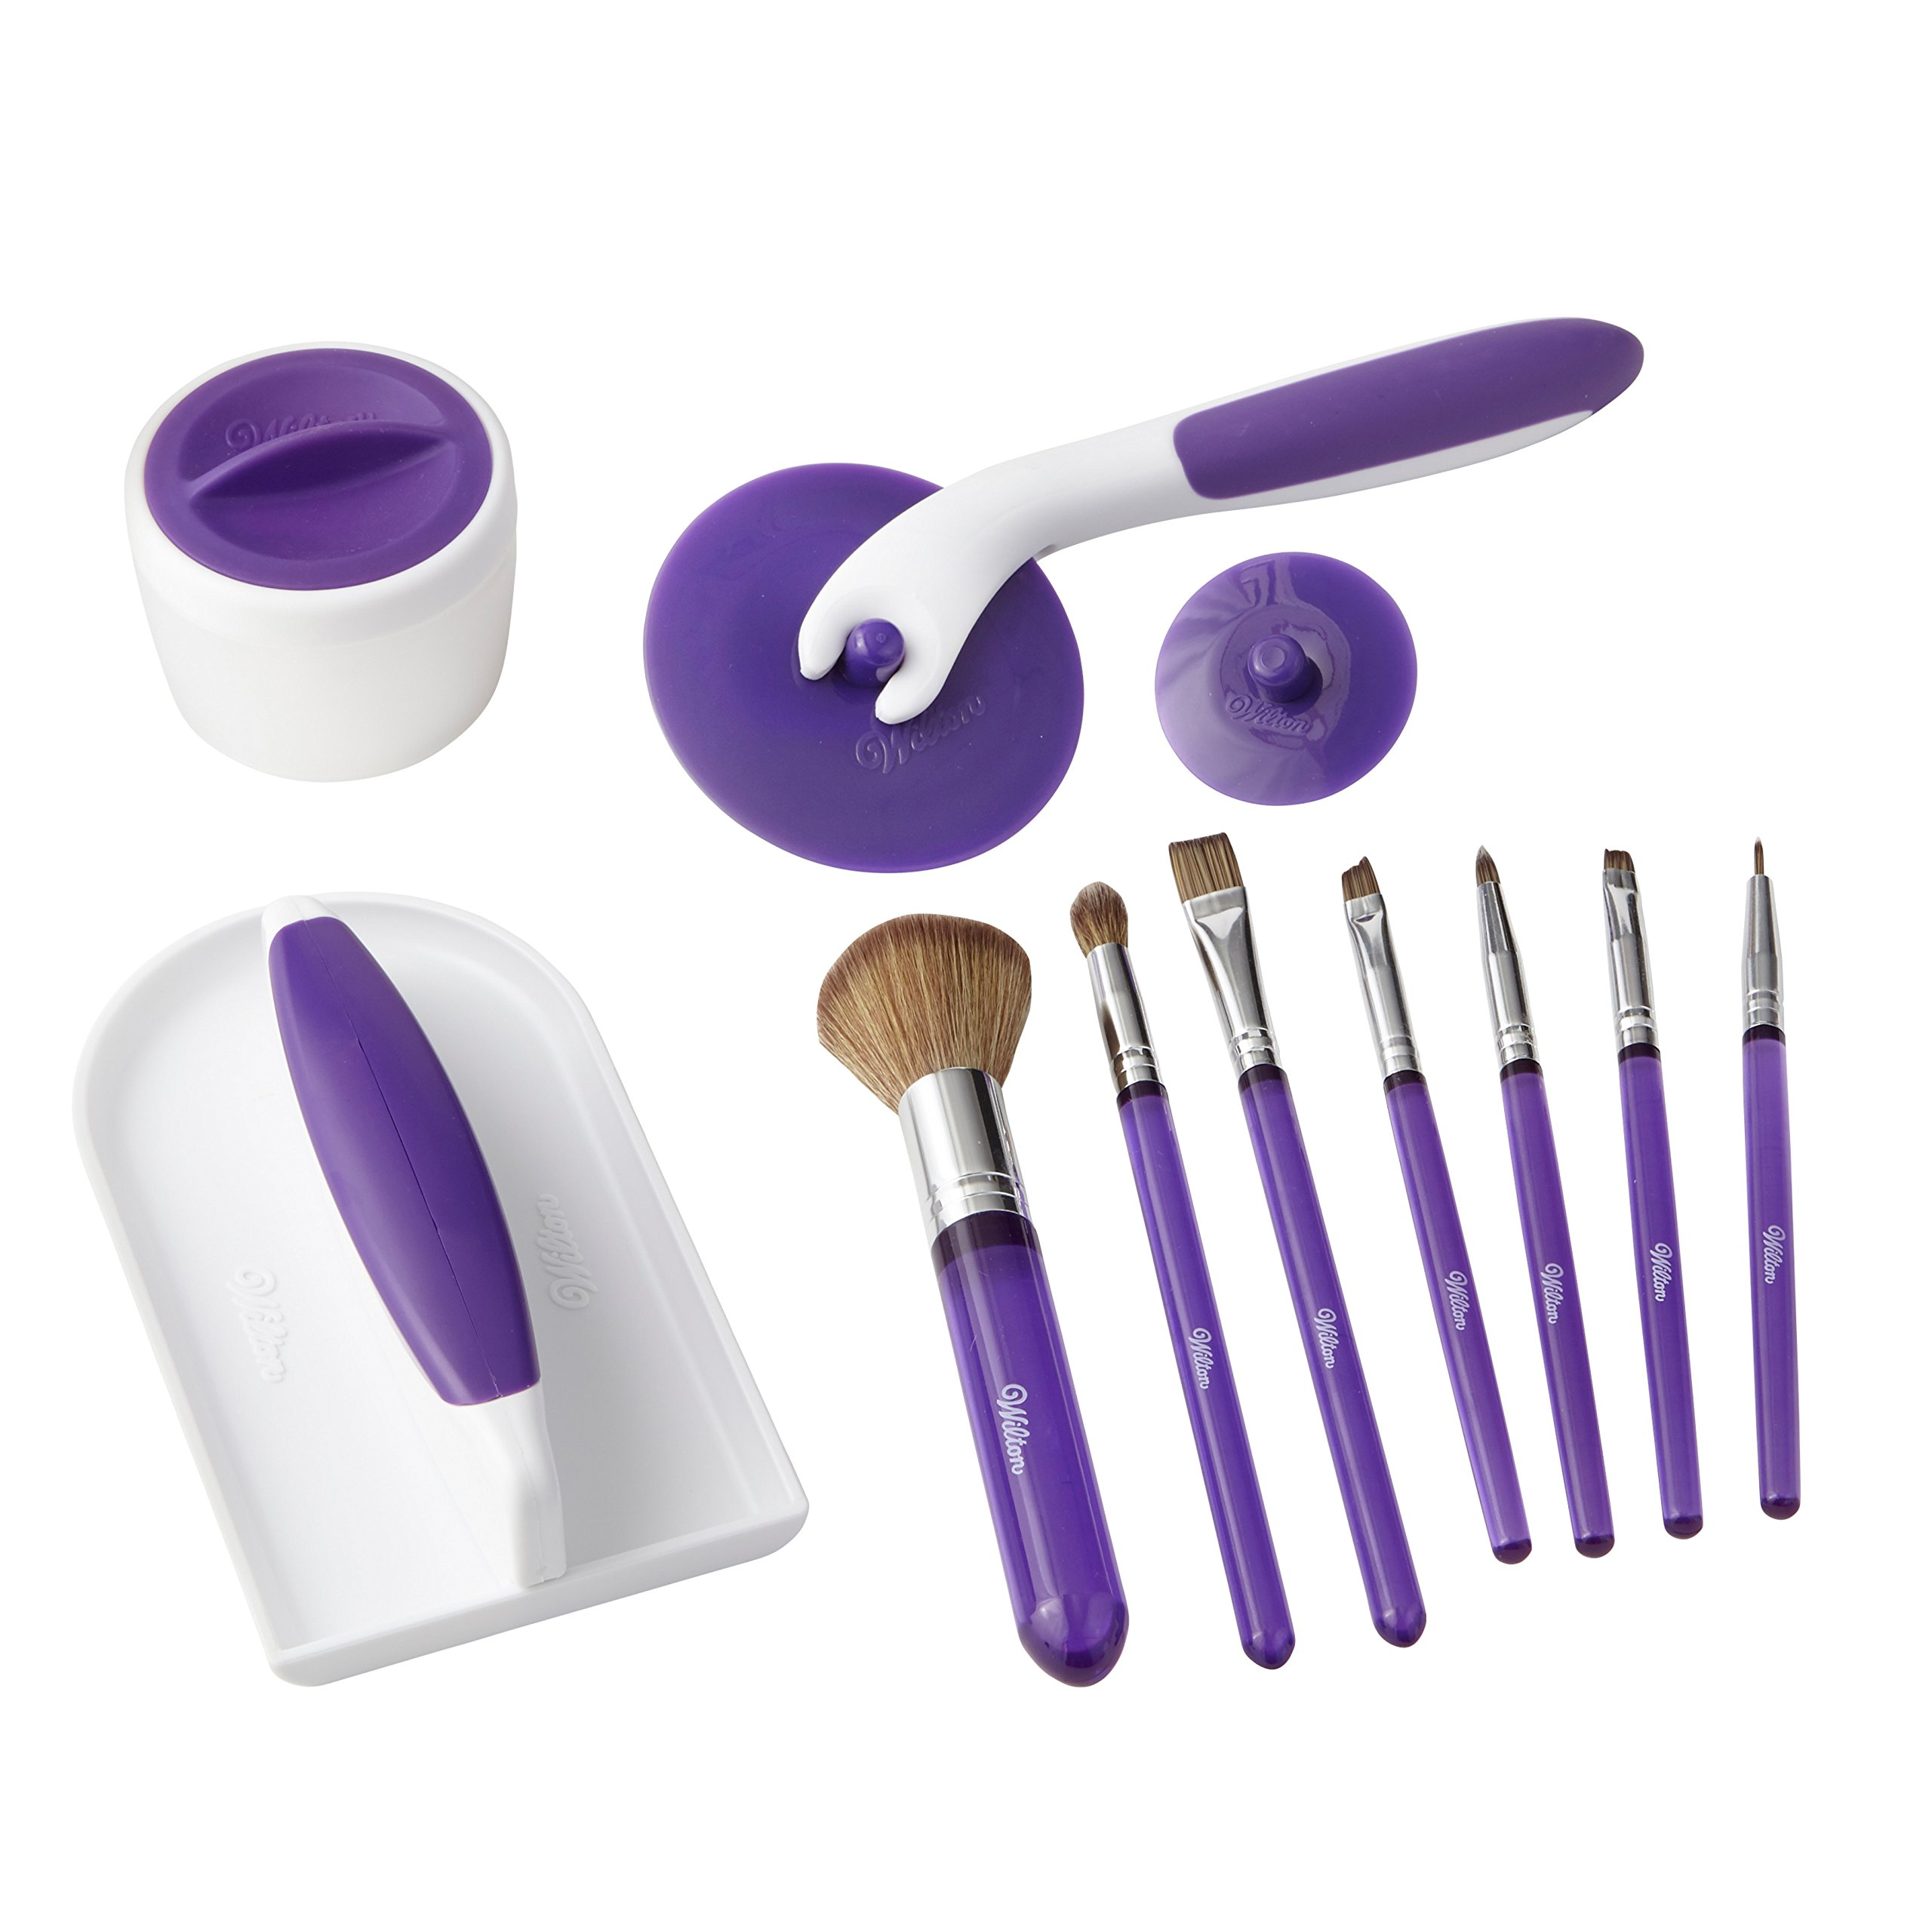 Wilton Decorate with Detail Brush Set for The Adventurous Cake Decorator, Cake Decorating Supplies